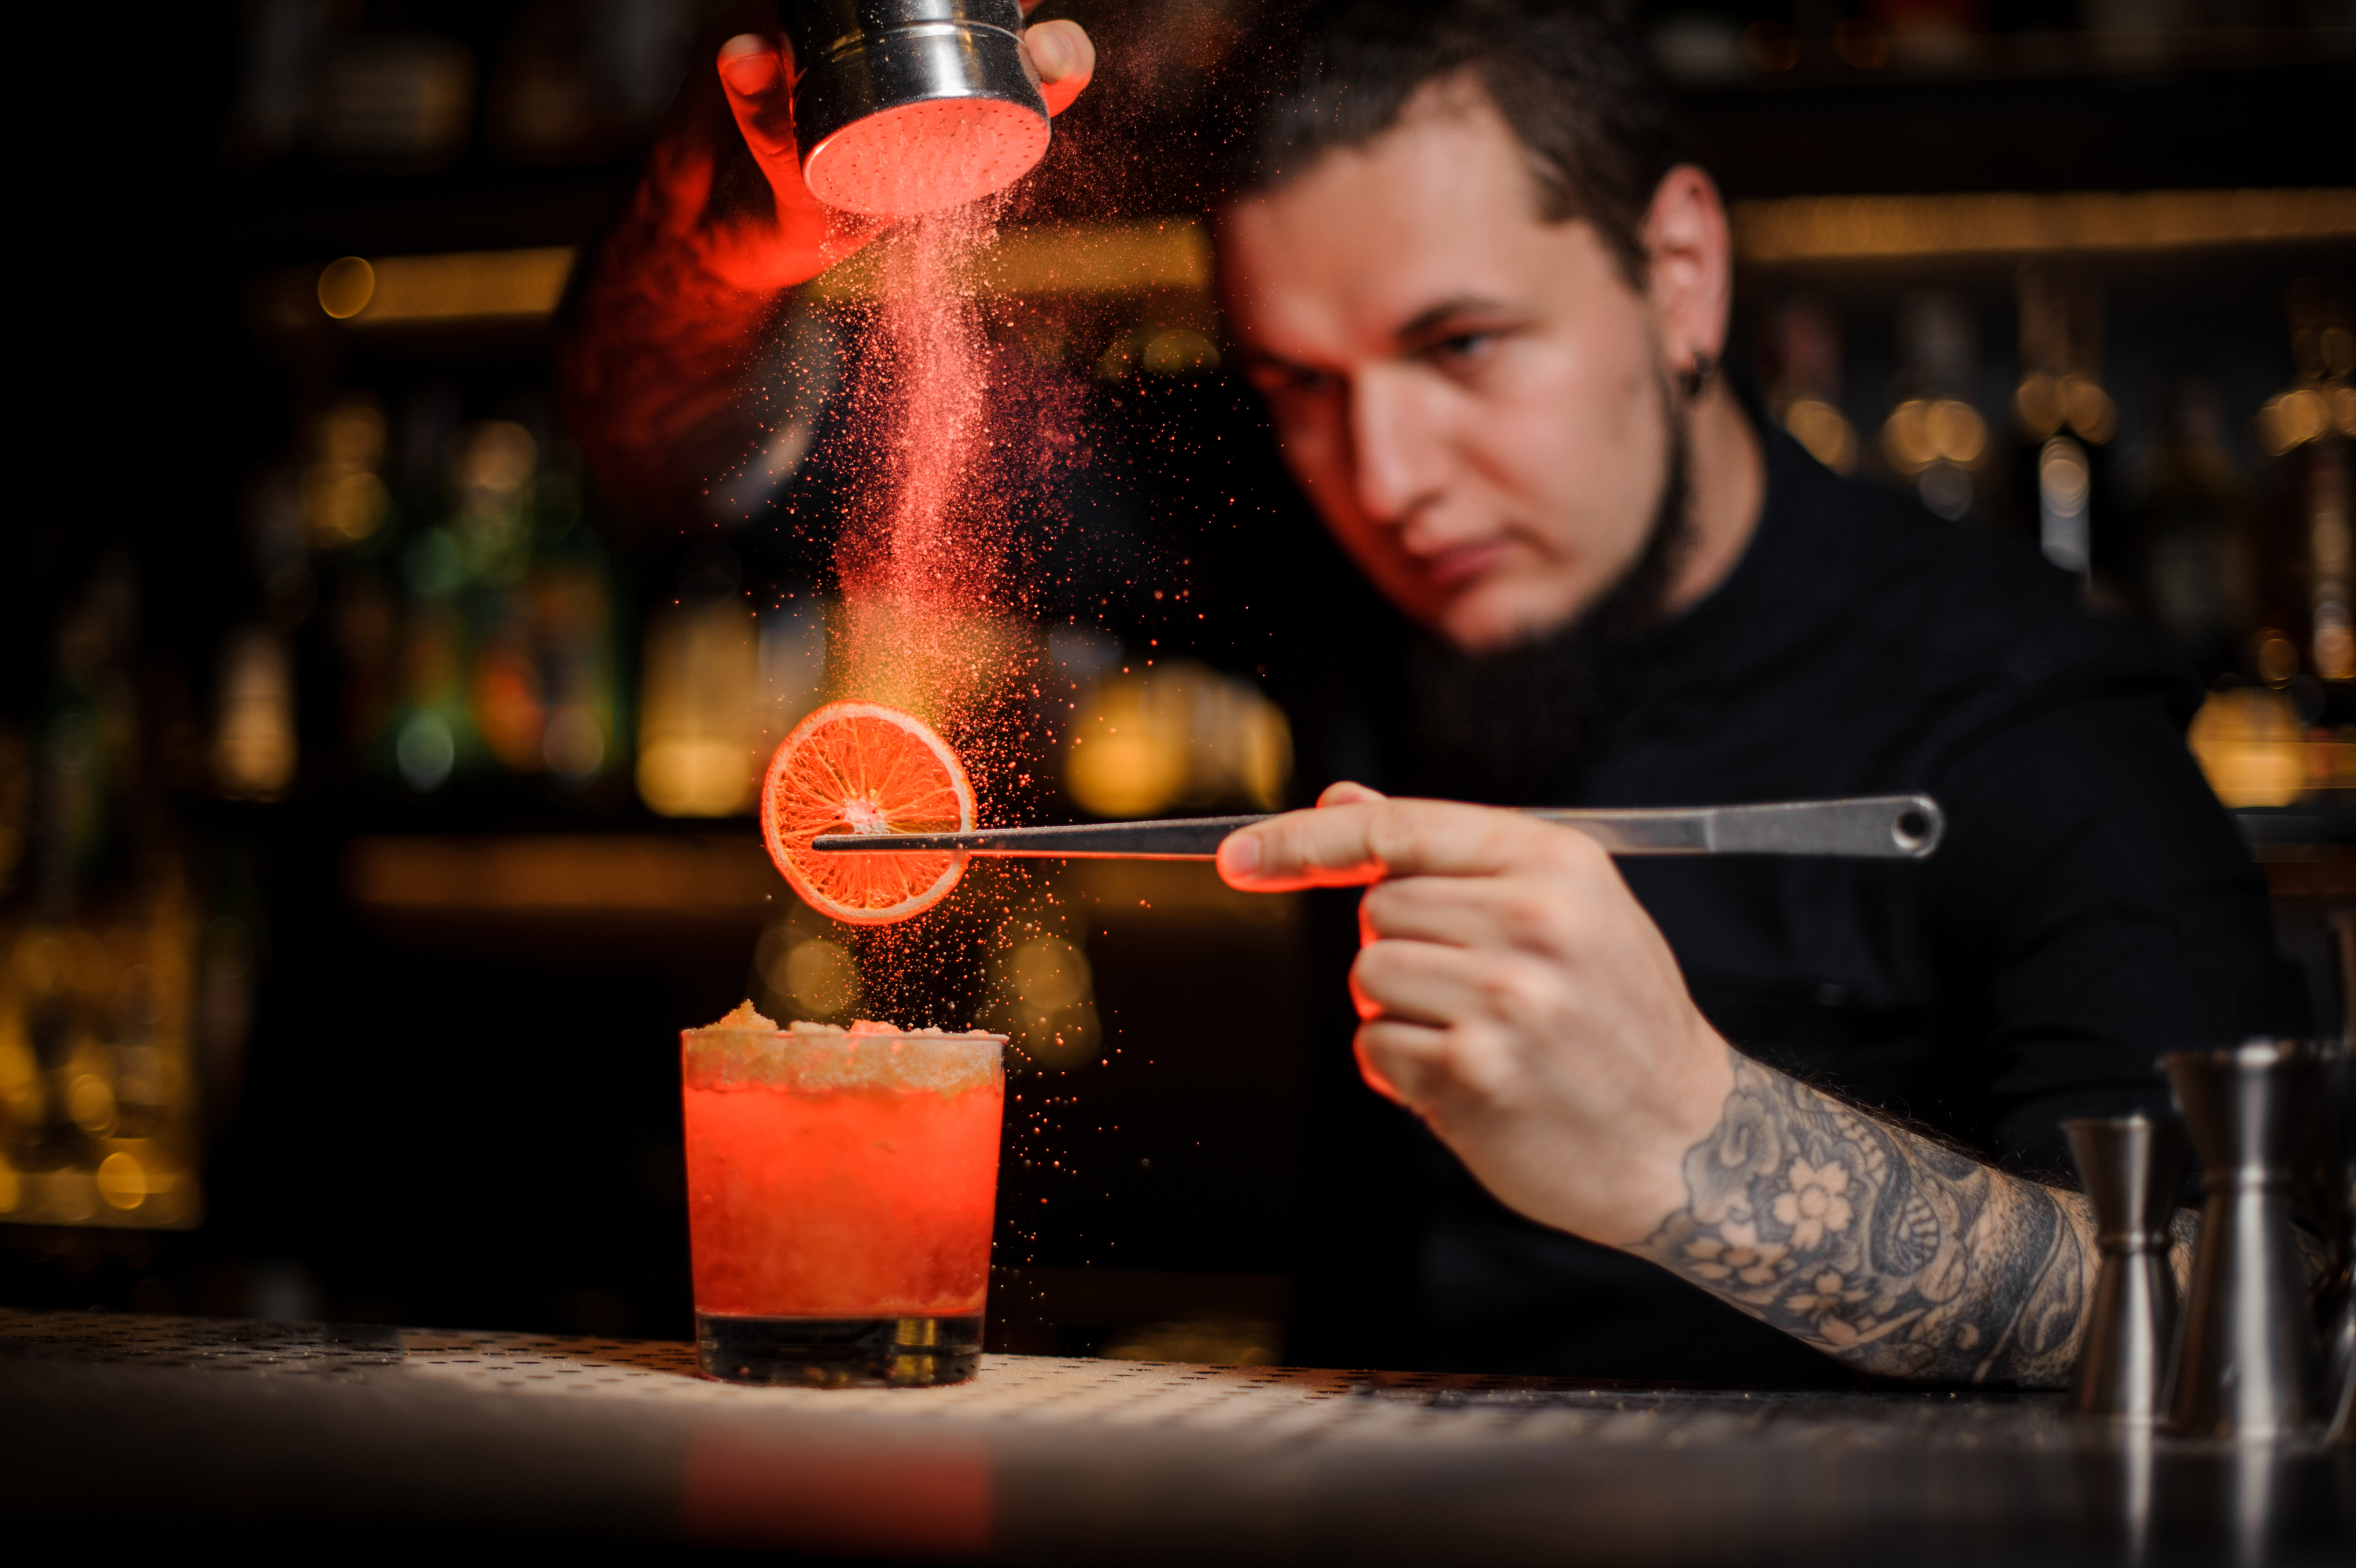 A bartender puts the finishing touches on a drink.